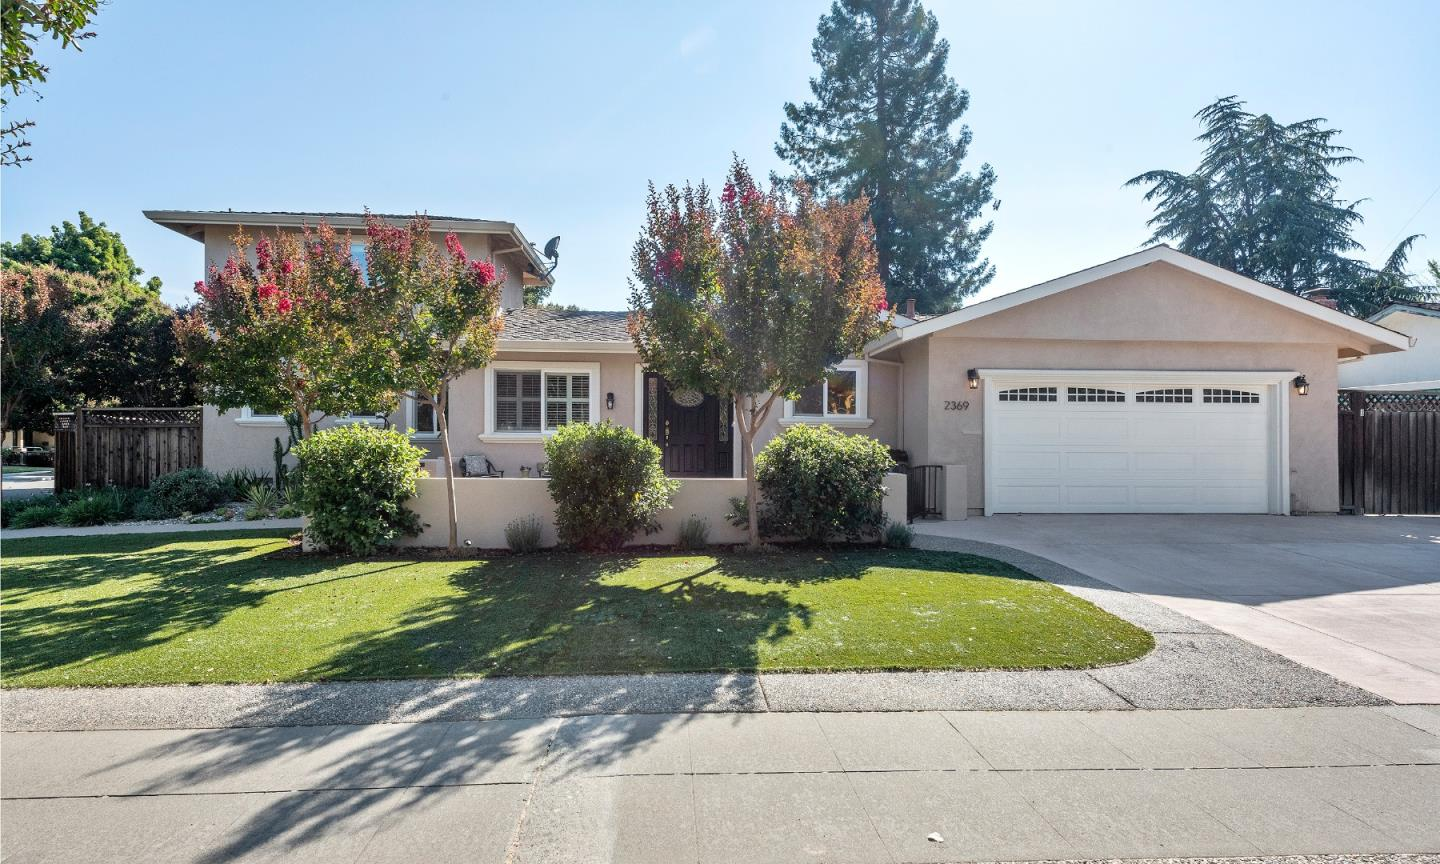 Property for sale at 2369 Plummer AVE, San Jose,  California 95125